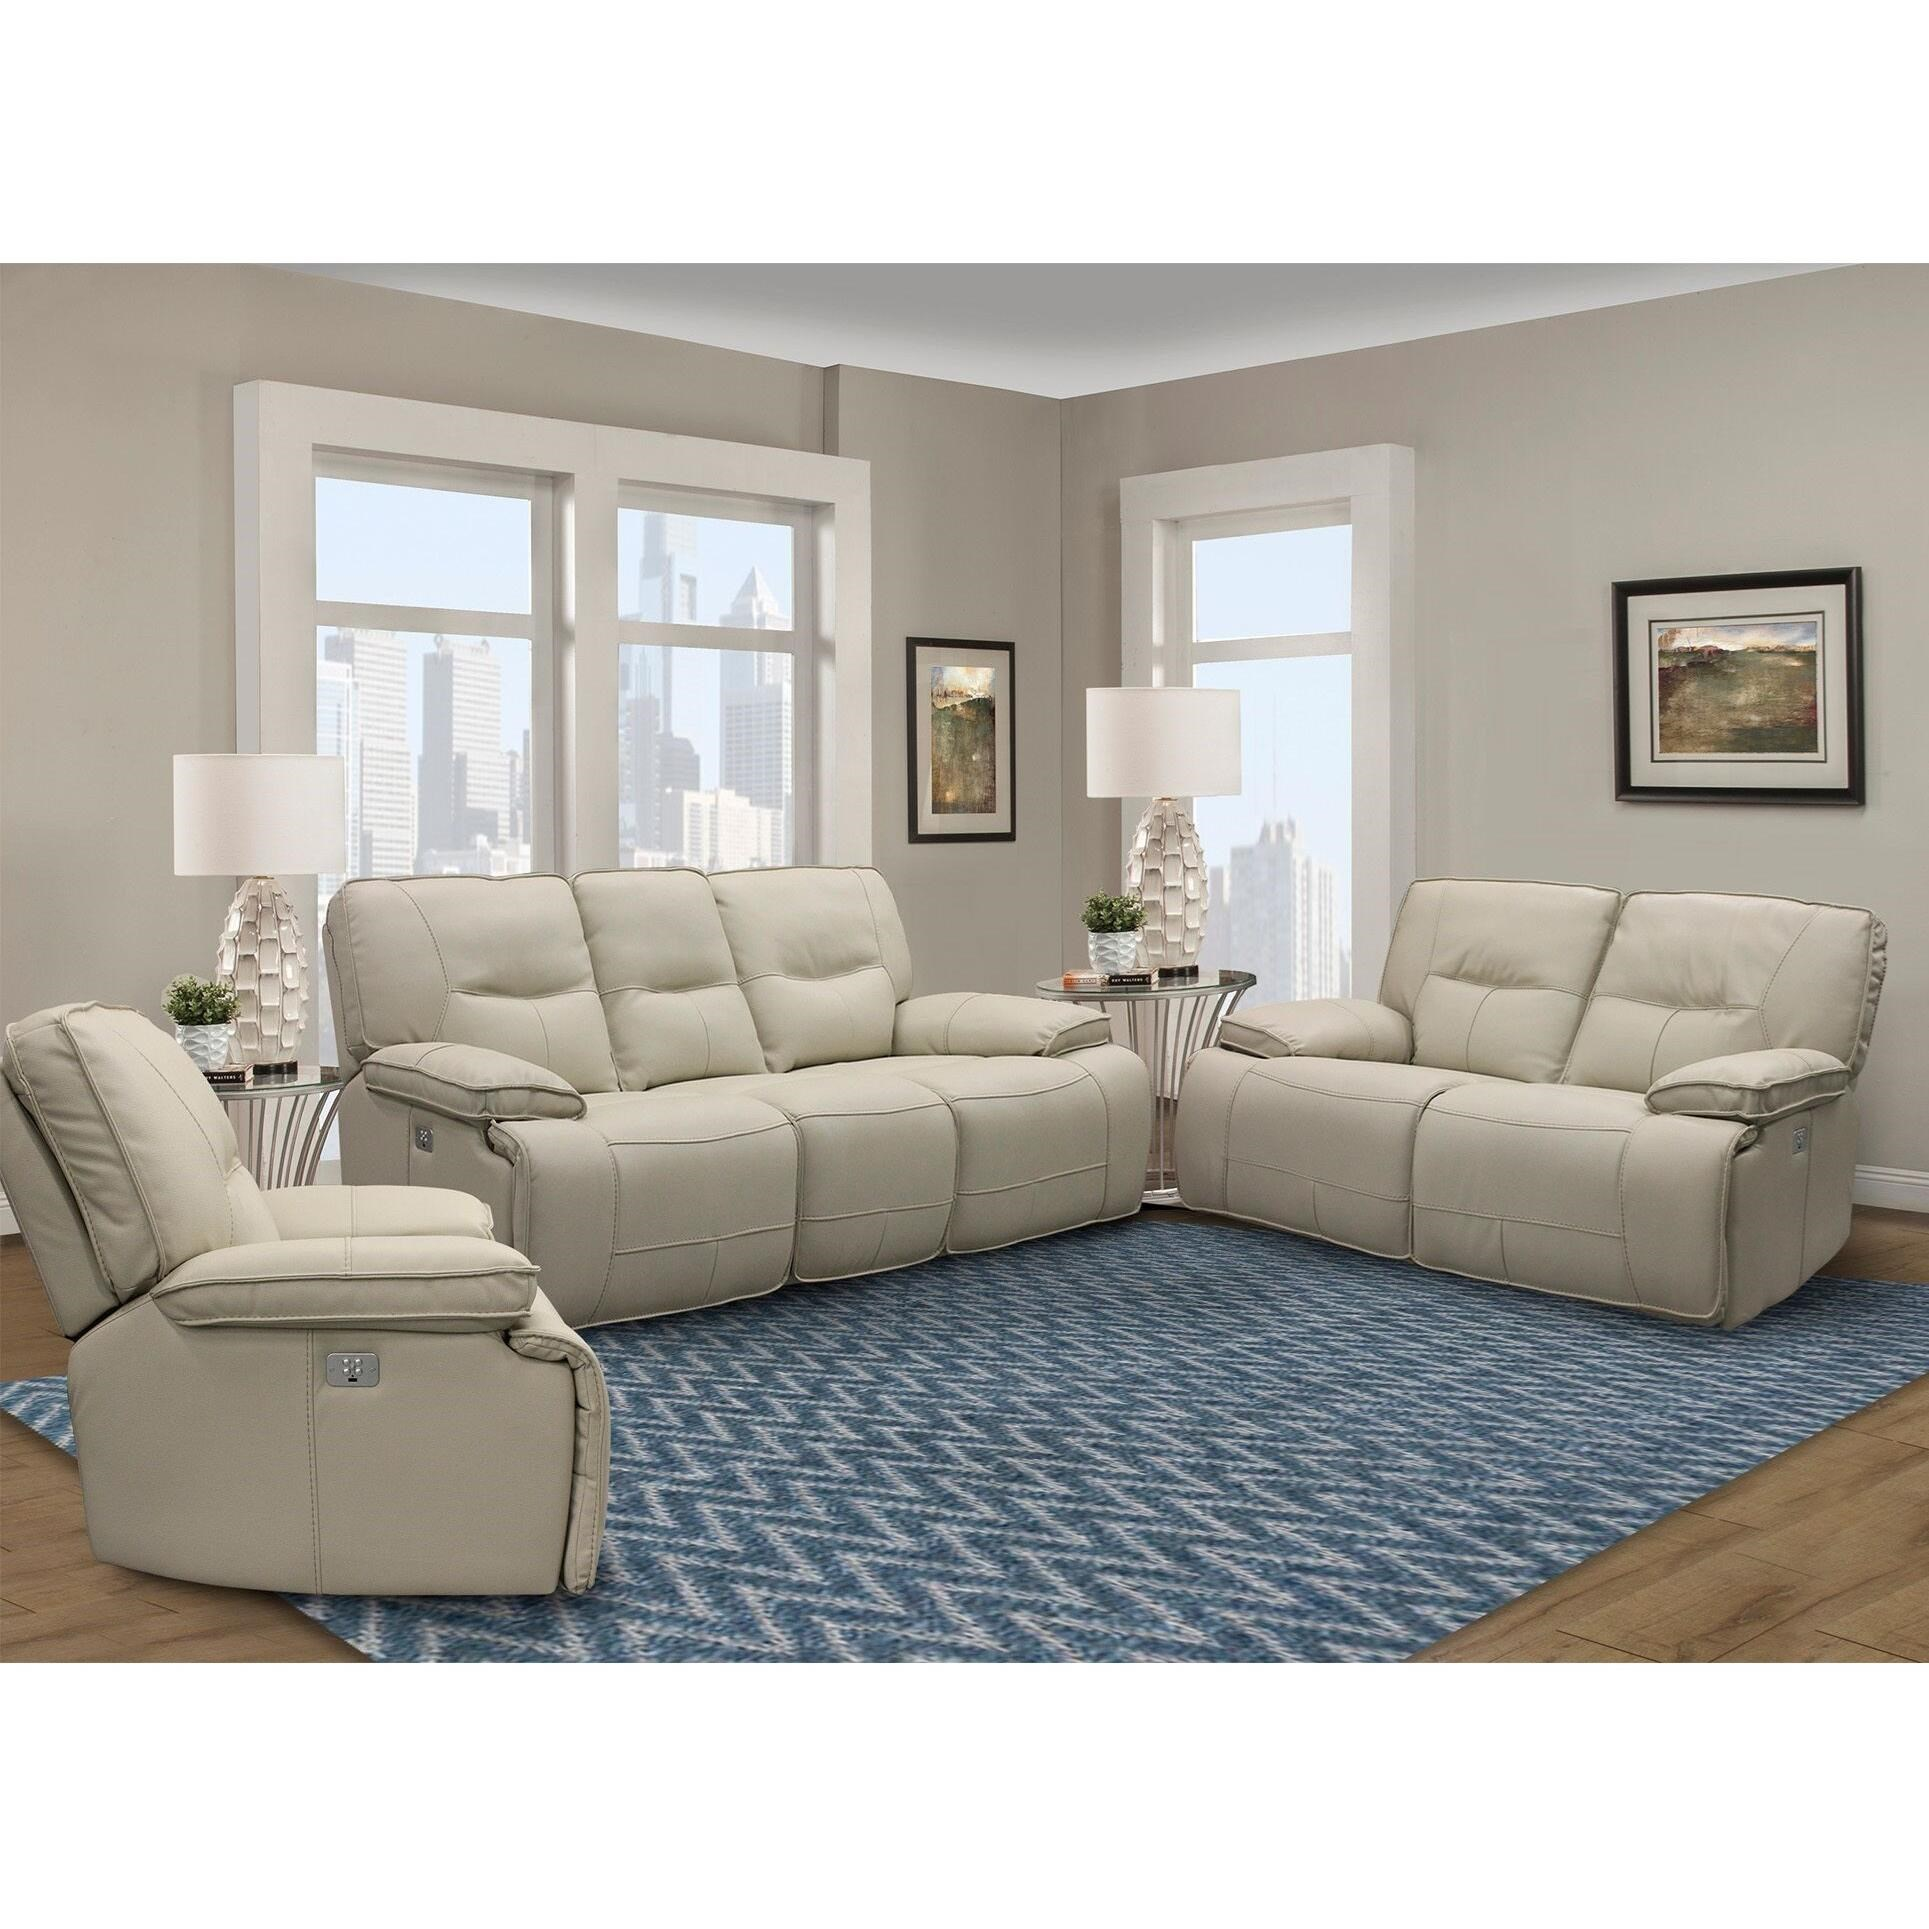 Spartacus Reclining Living Room Group by Parker Living at Smart Buy Furniture